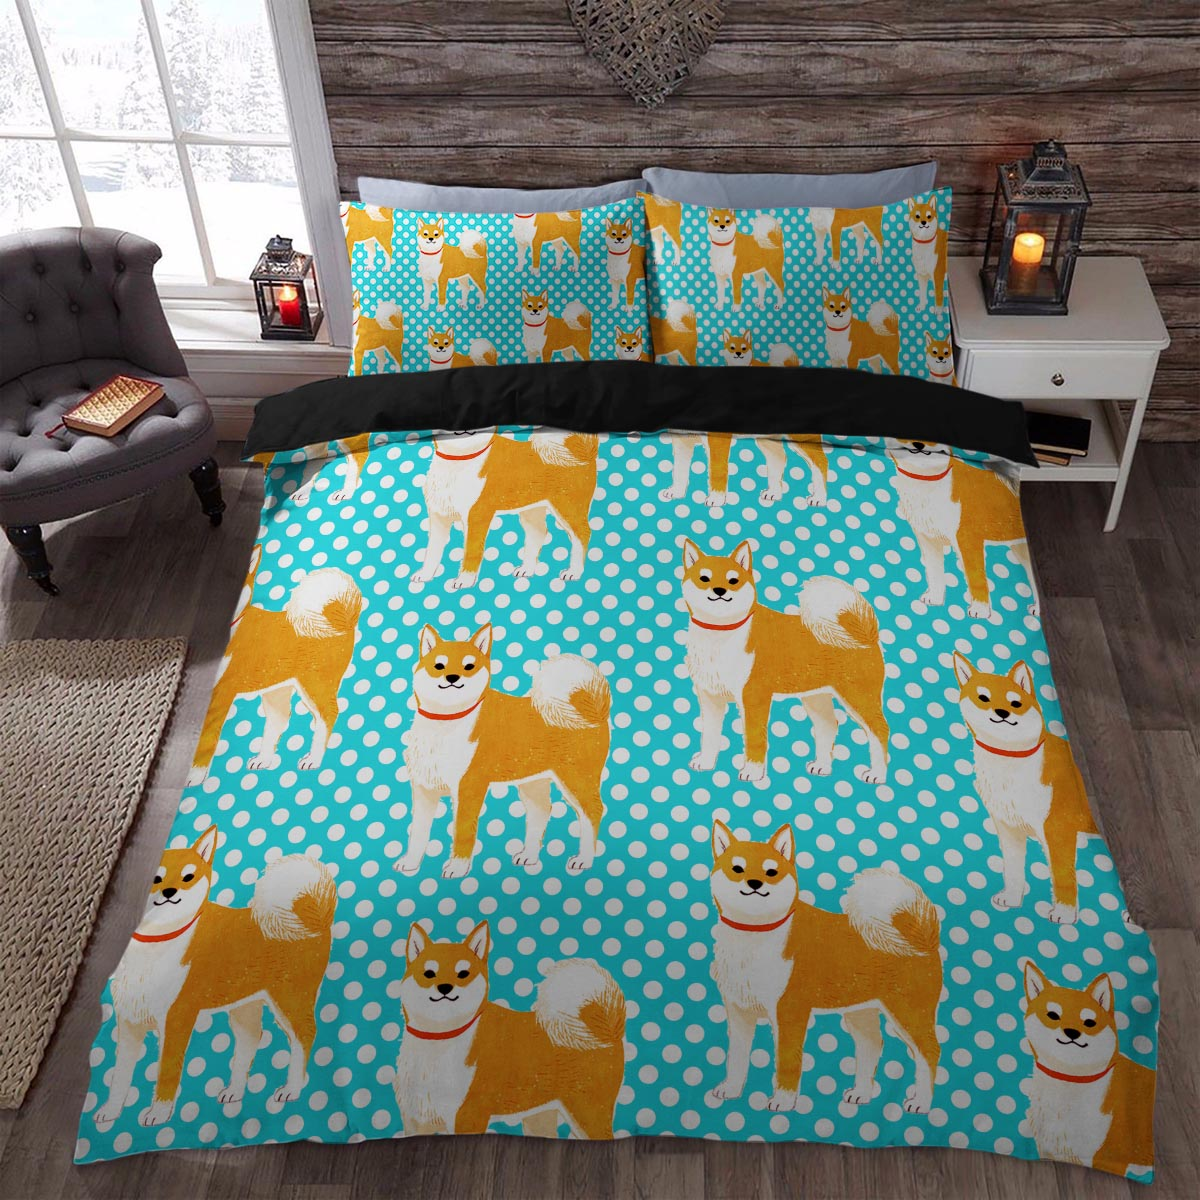 Cute Polka Dots Akita 3D Printed Little Dog Bedding Set Duvet Cover Shop  For Sale